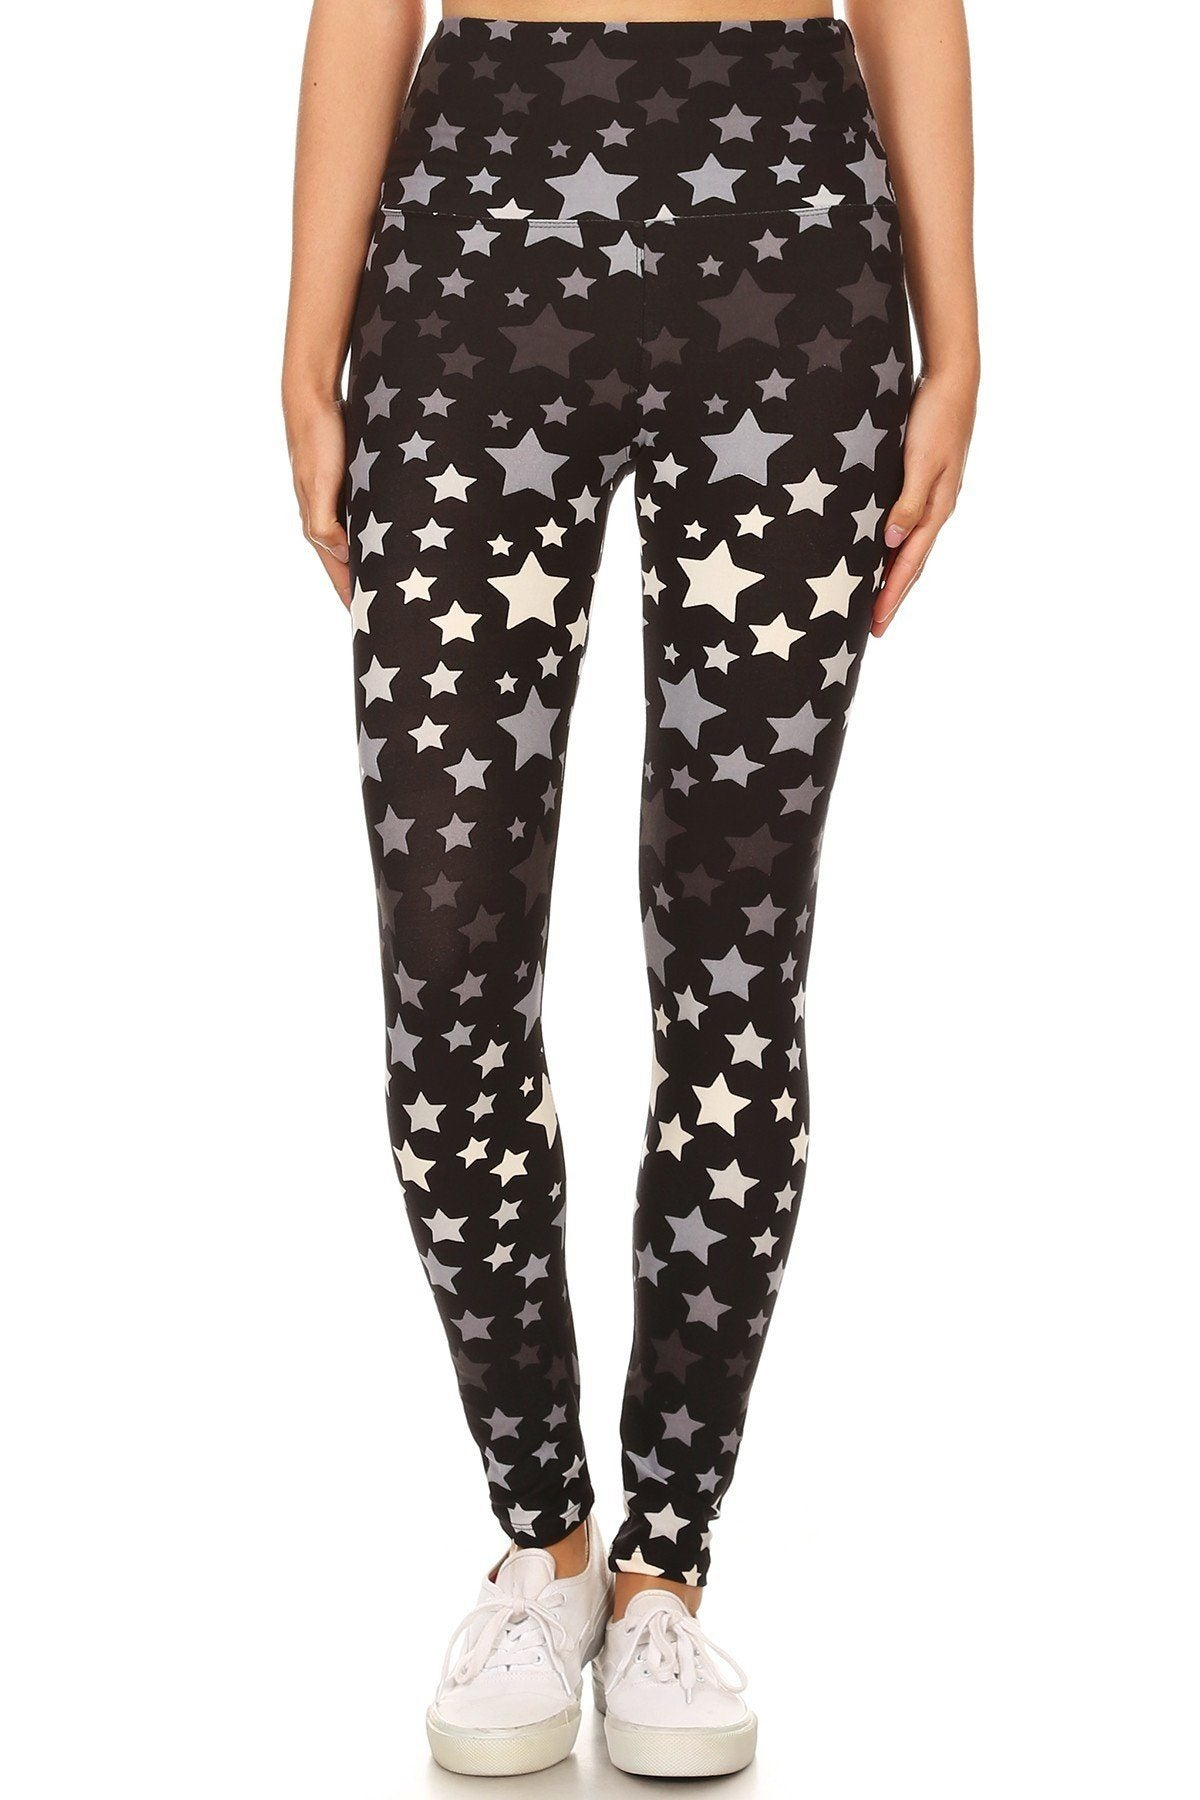 Long Yoga Style Banded Lined Stars Printed Knit Legging With High Waist. - De Bawa Inc.